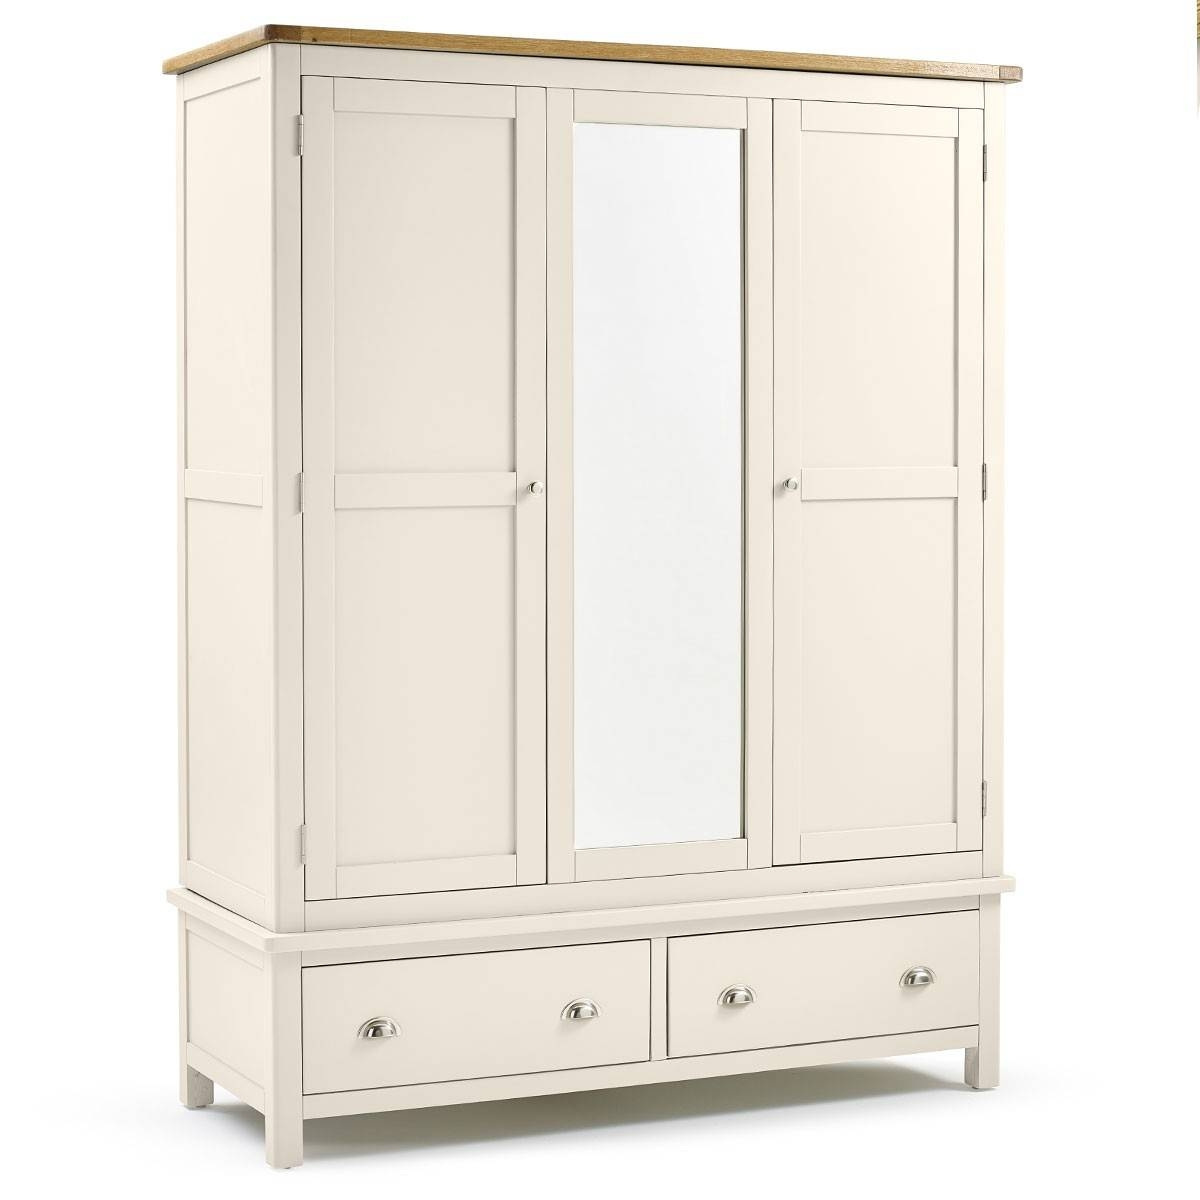 Hutch® – Portsmouth Cream Painted Triple Wardrobe Regarding Cream Triple Wardrobes (View 7 of 15)